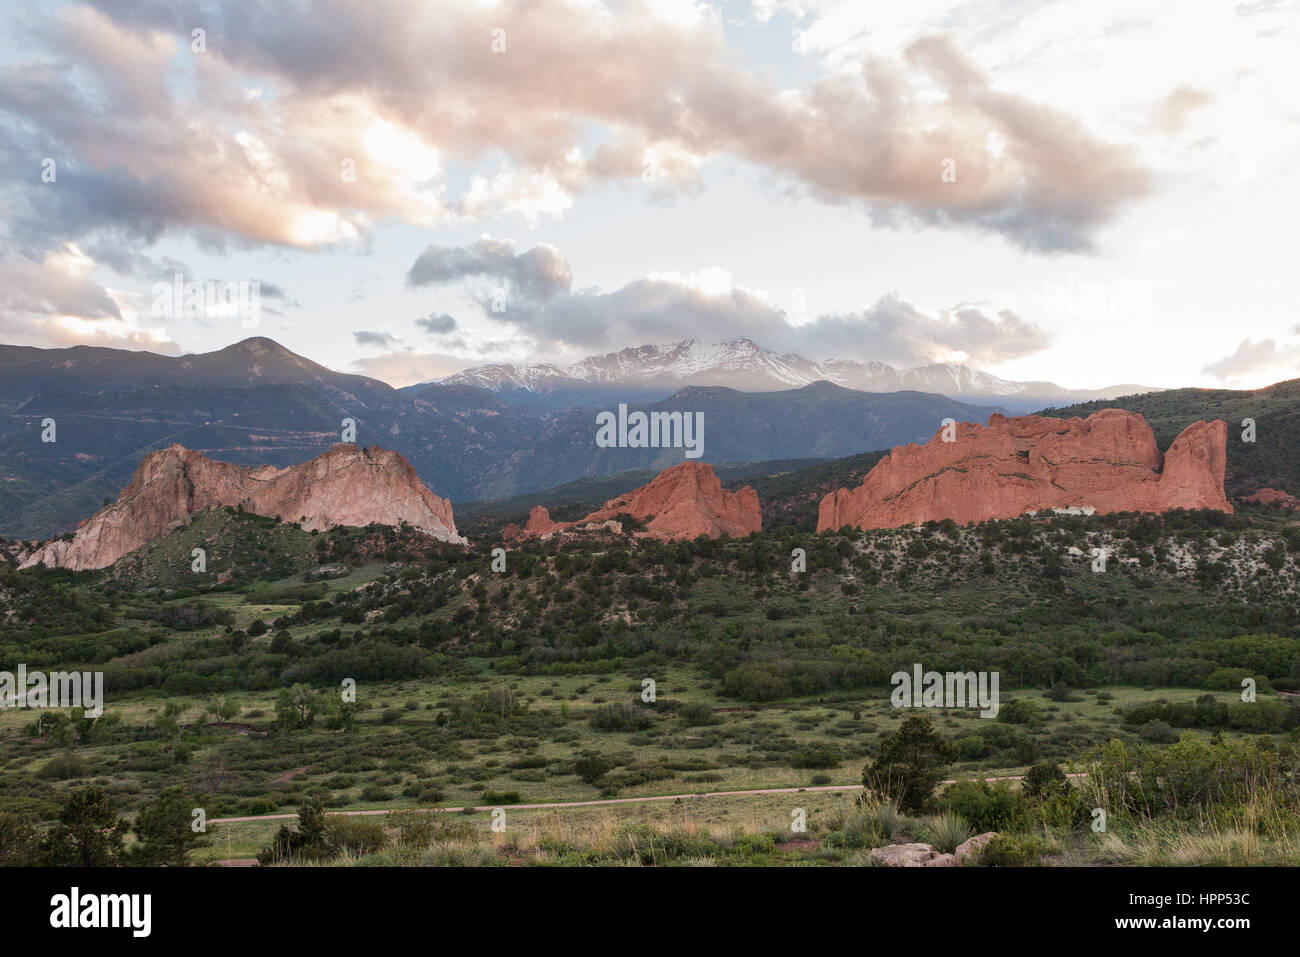 Sunrise at the Garden of the Gods in Colorado Springs - Stock Image